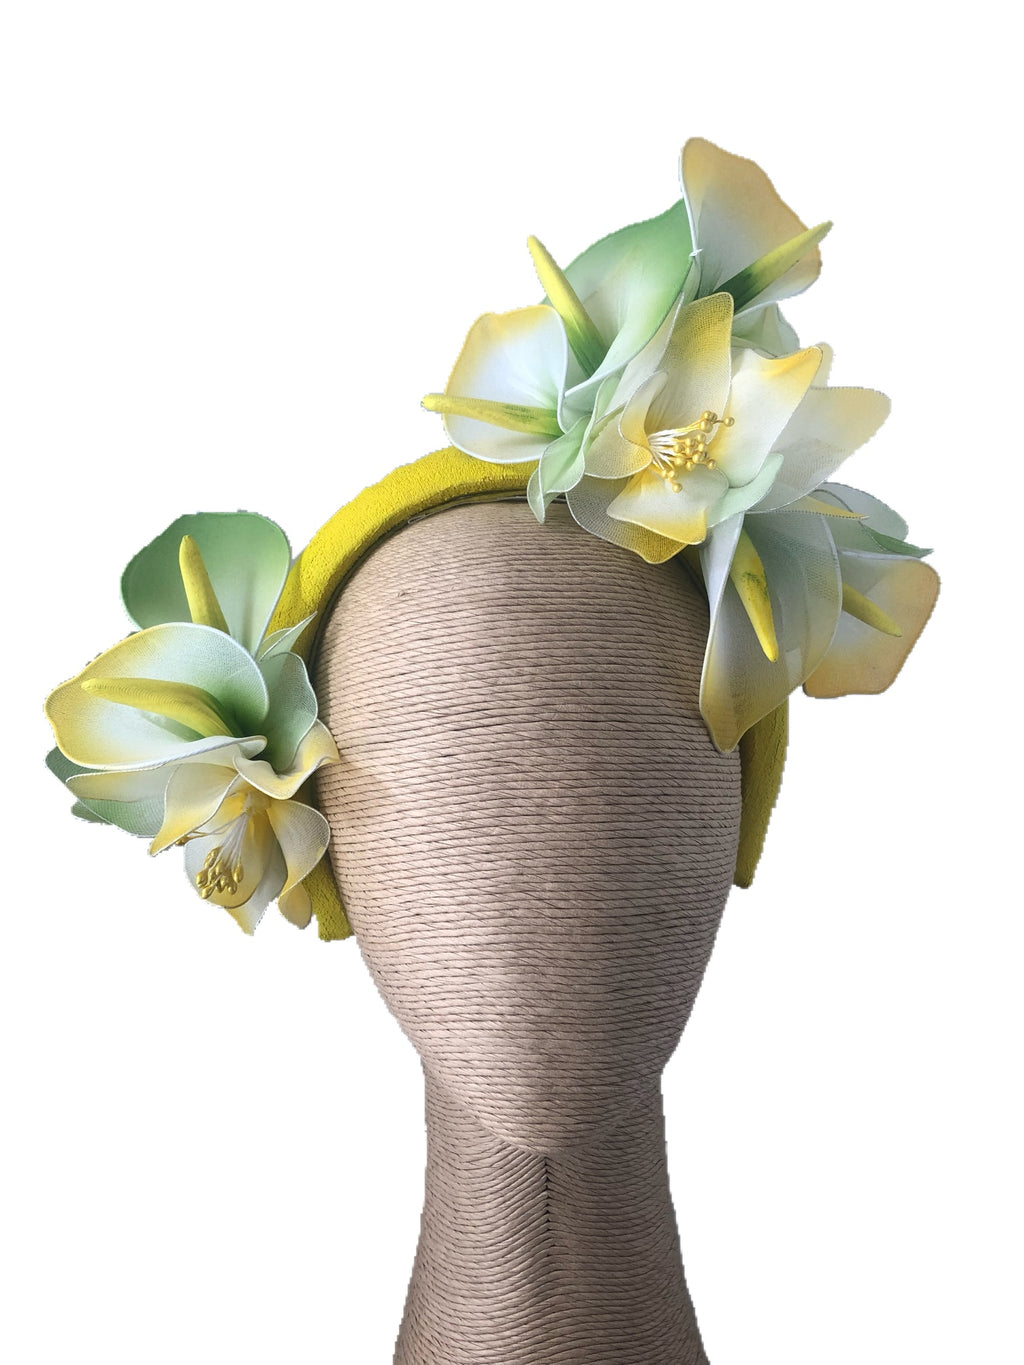 Claire Hahn Aoife Headband with Flowers in Yellow Green - DAMAGED